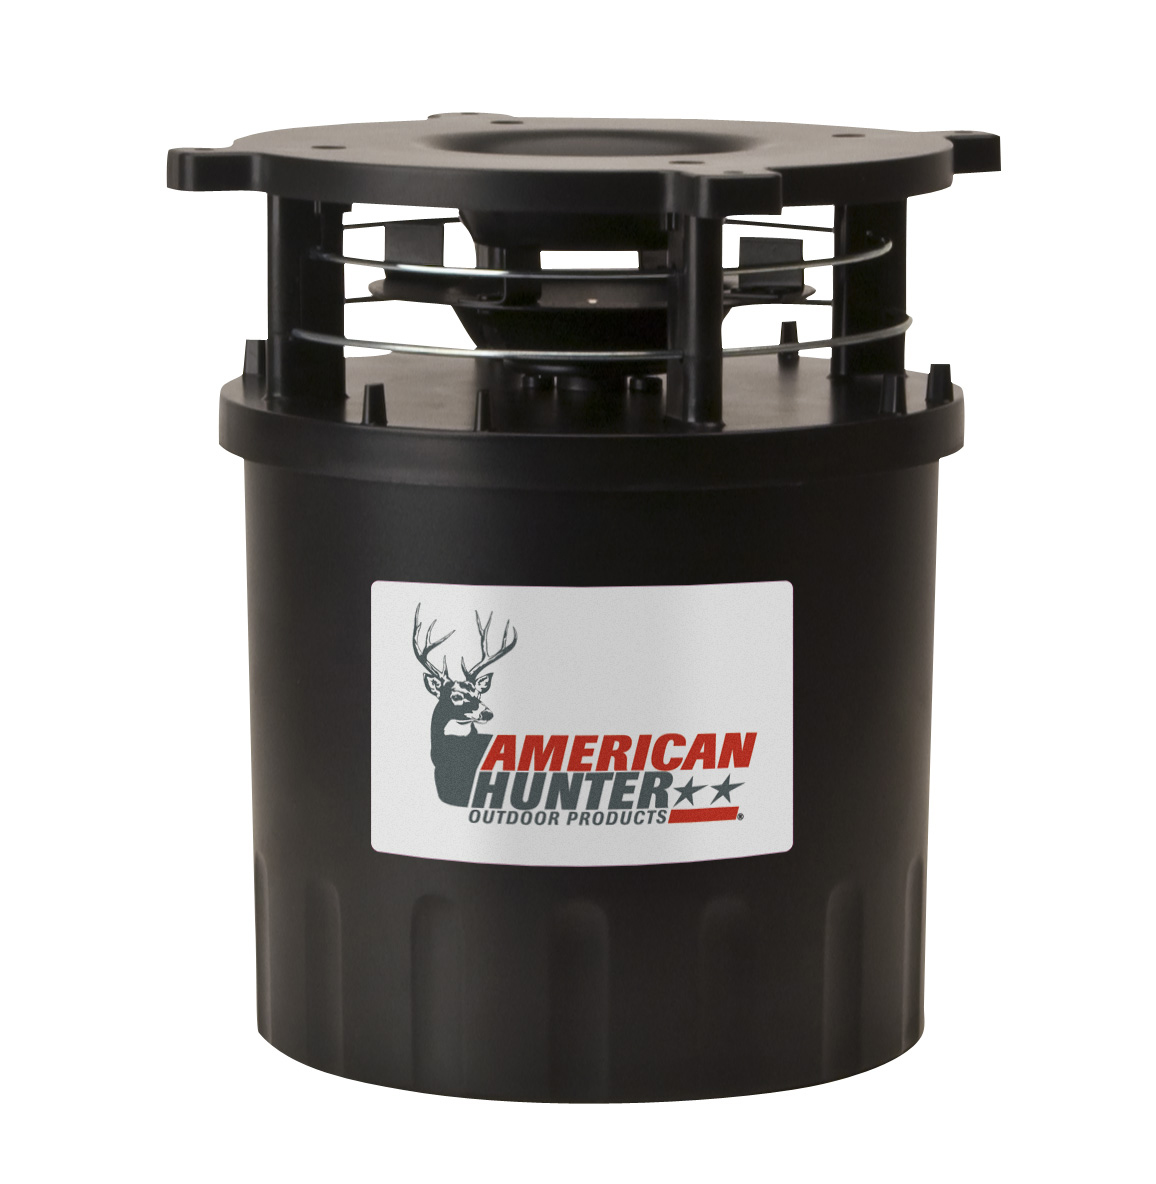 American Hunter RD-Pro Kit Pro Digital Feeder Kit and Varmint Guard